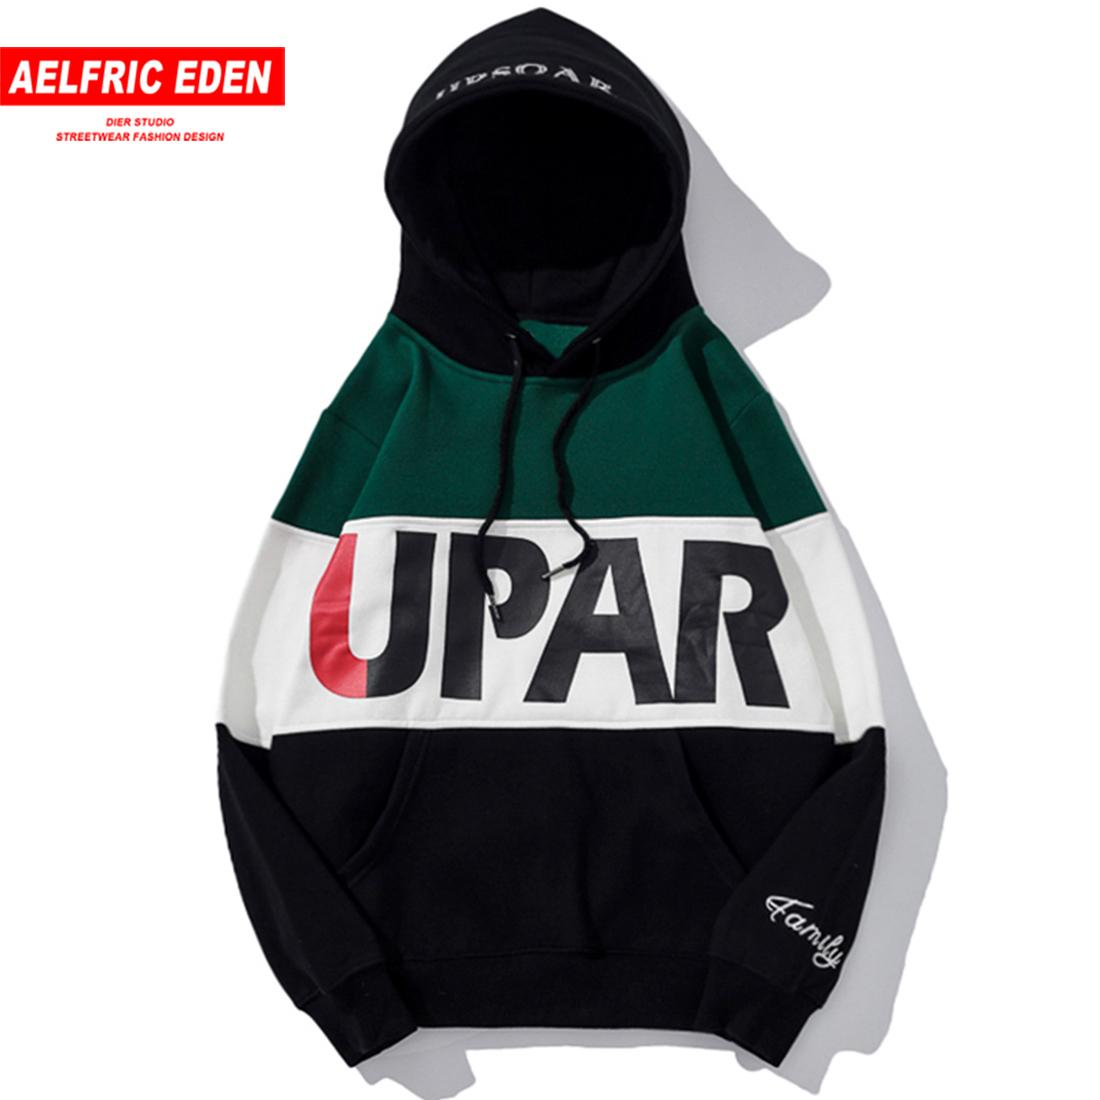 2019 Aelfric Eden Fashion Sweatshirts Men Color Patchwork Pullover Casual Streetwear Letter Printed Hip Hop Hoodies Up16 C19040402 From Linmei0004,